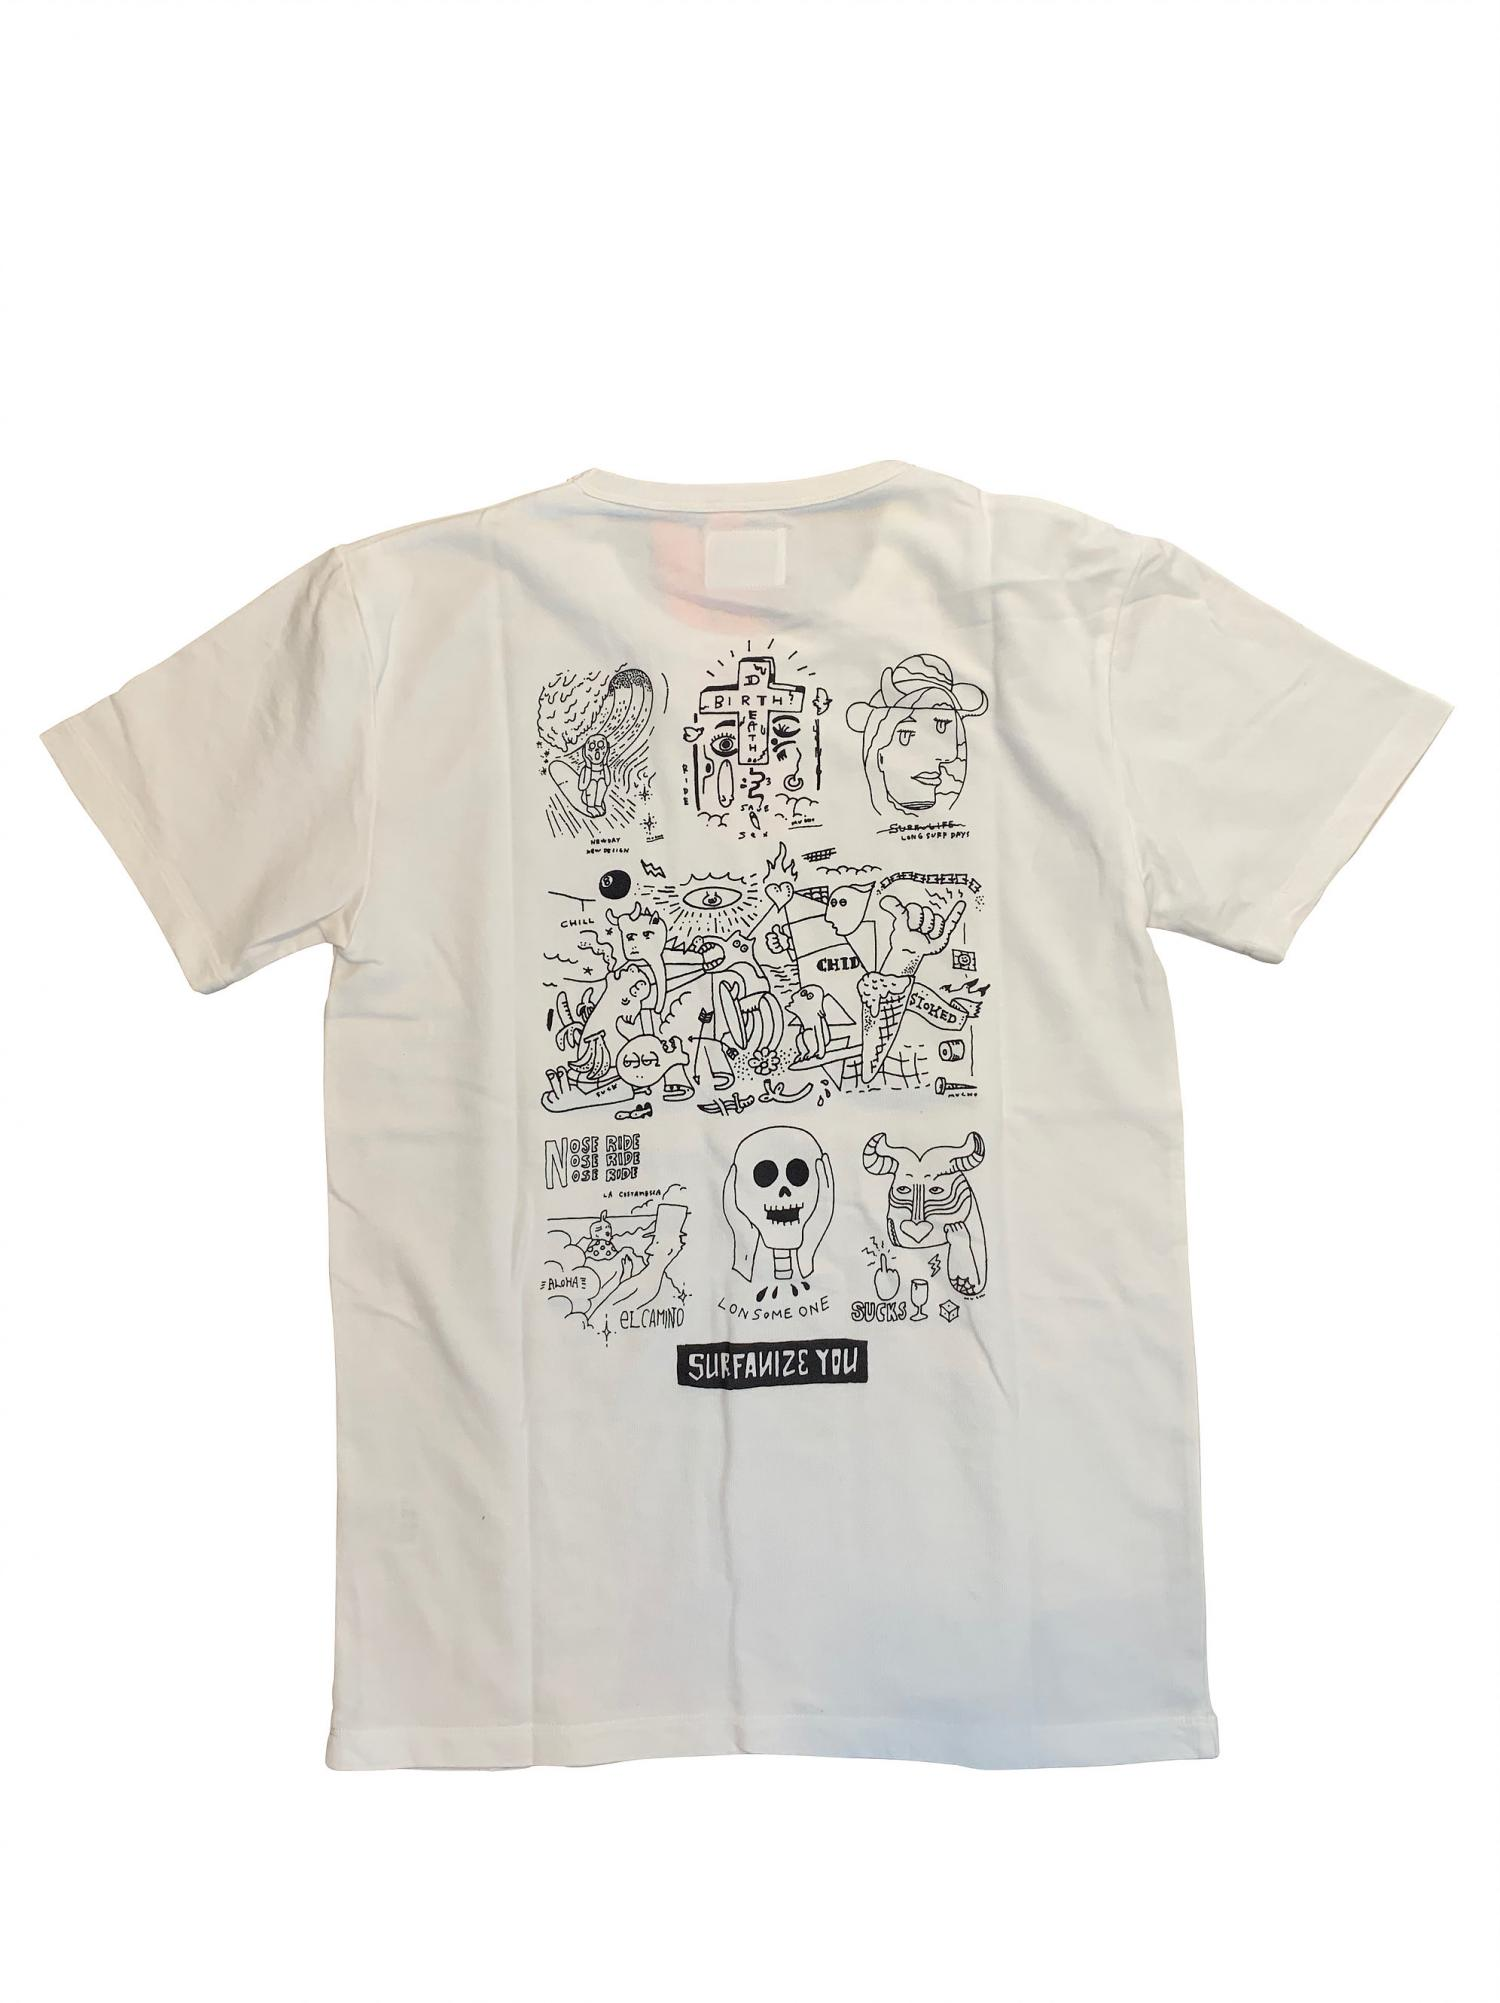 P SUPPLY. ARTIST Collaboration TEE -BACK PRINT ART-